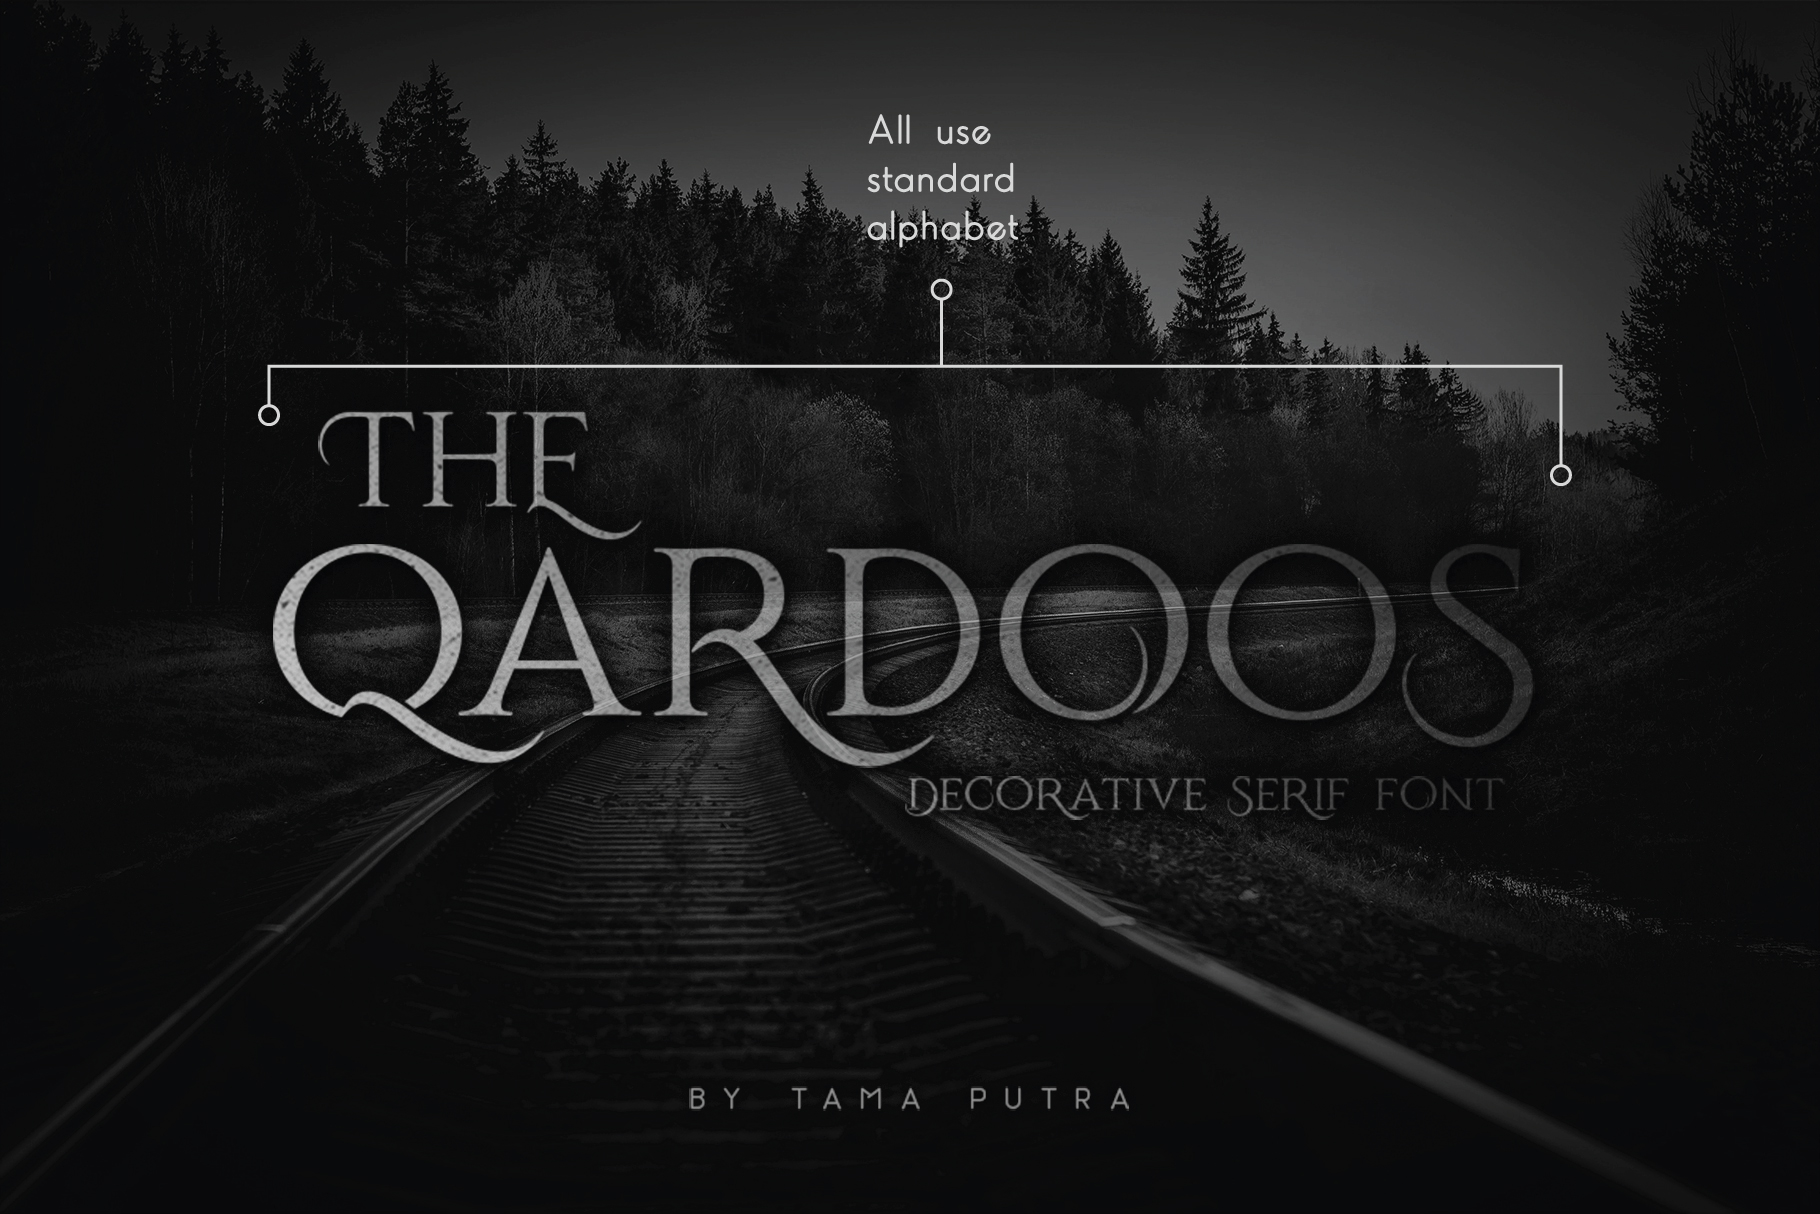 Qardoos Decorative Serif Typeface example image 1